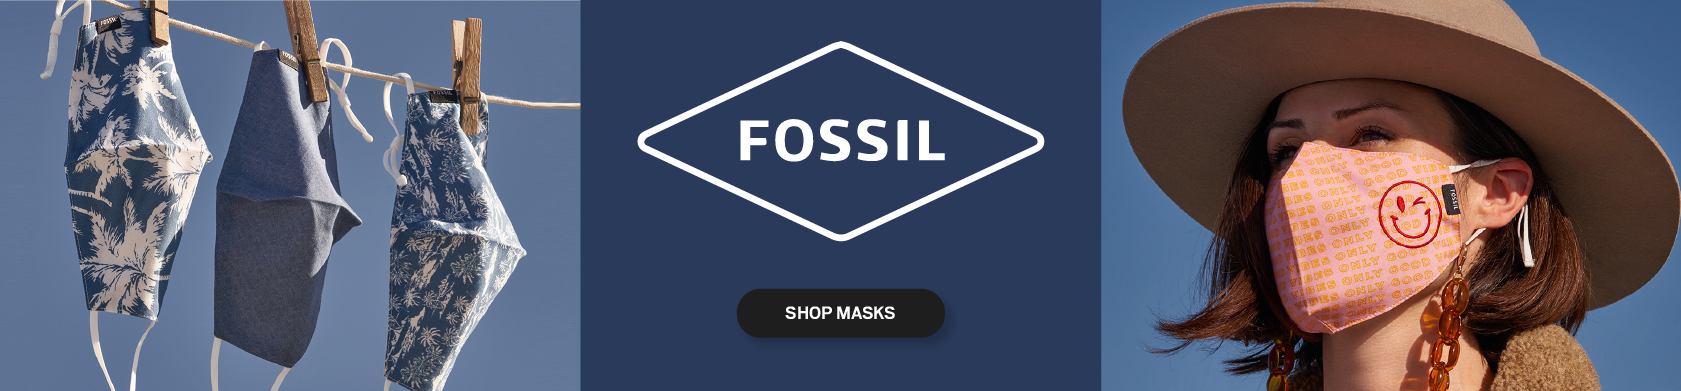 Fossil Mask